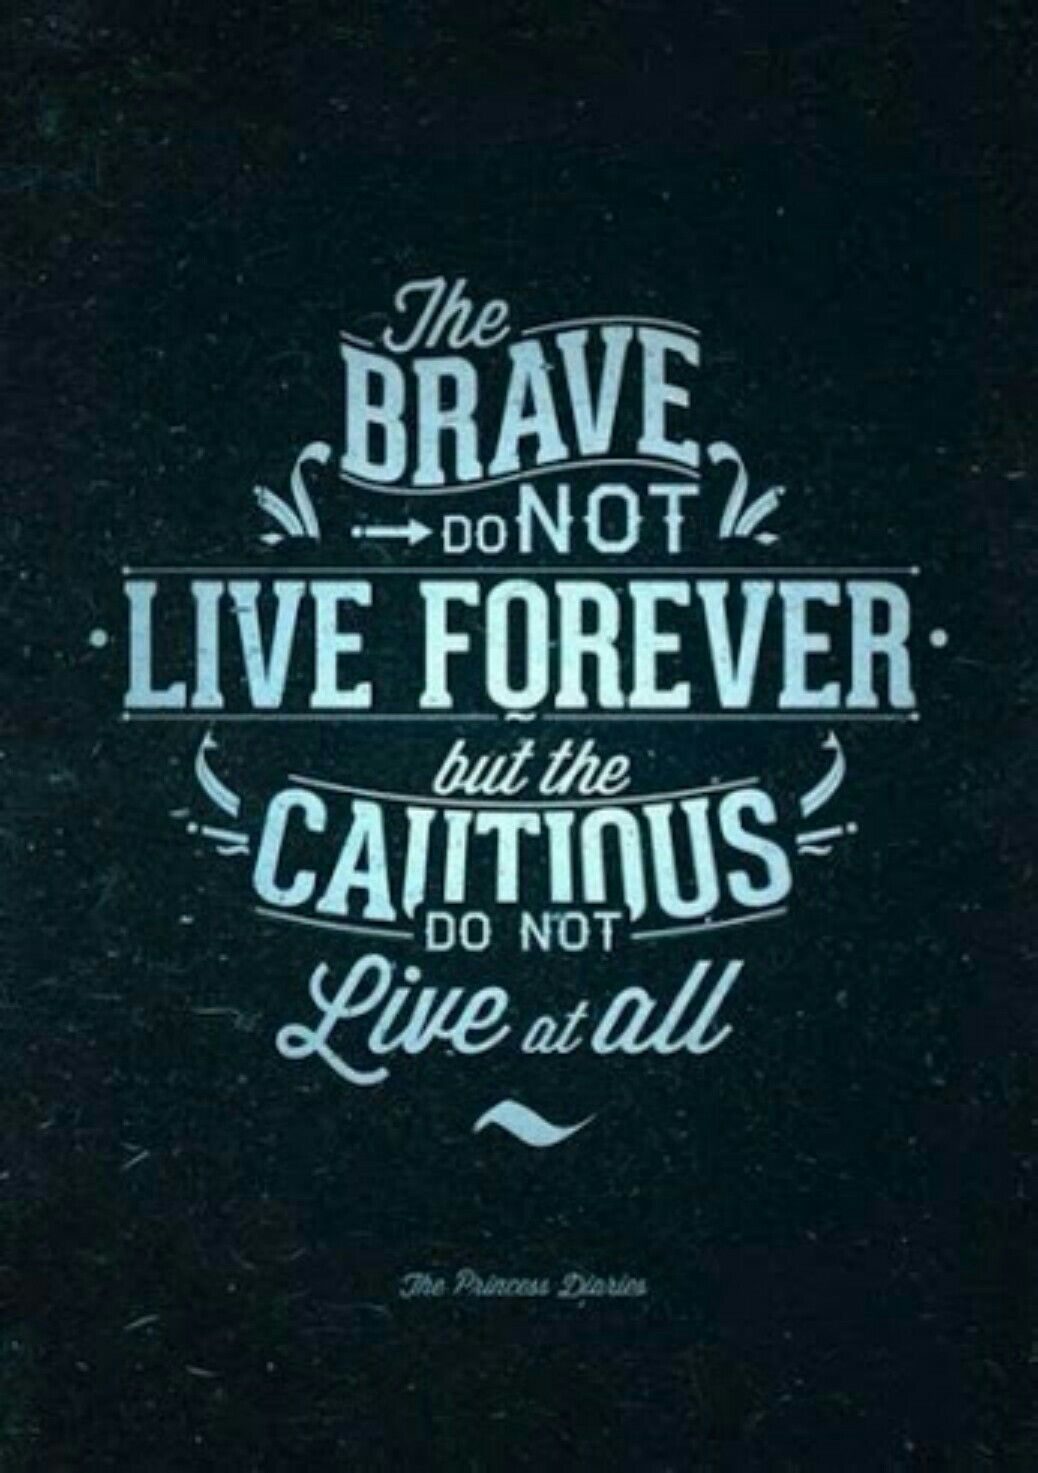 Brave Quotes Pinkarma Burris On Sayings And Quotetations  Pinterest